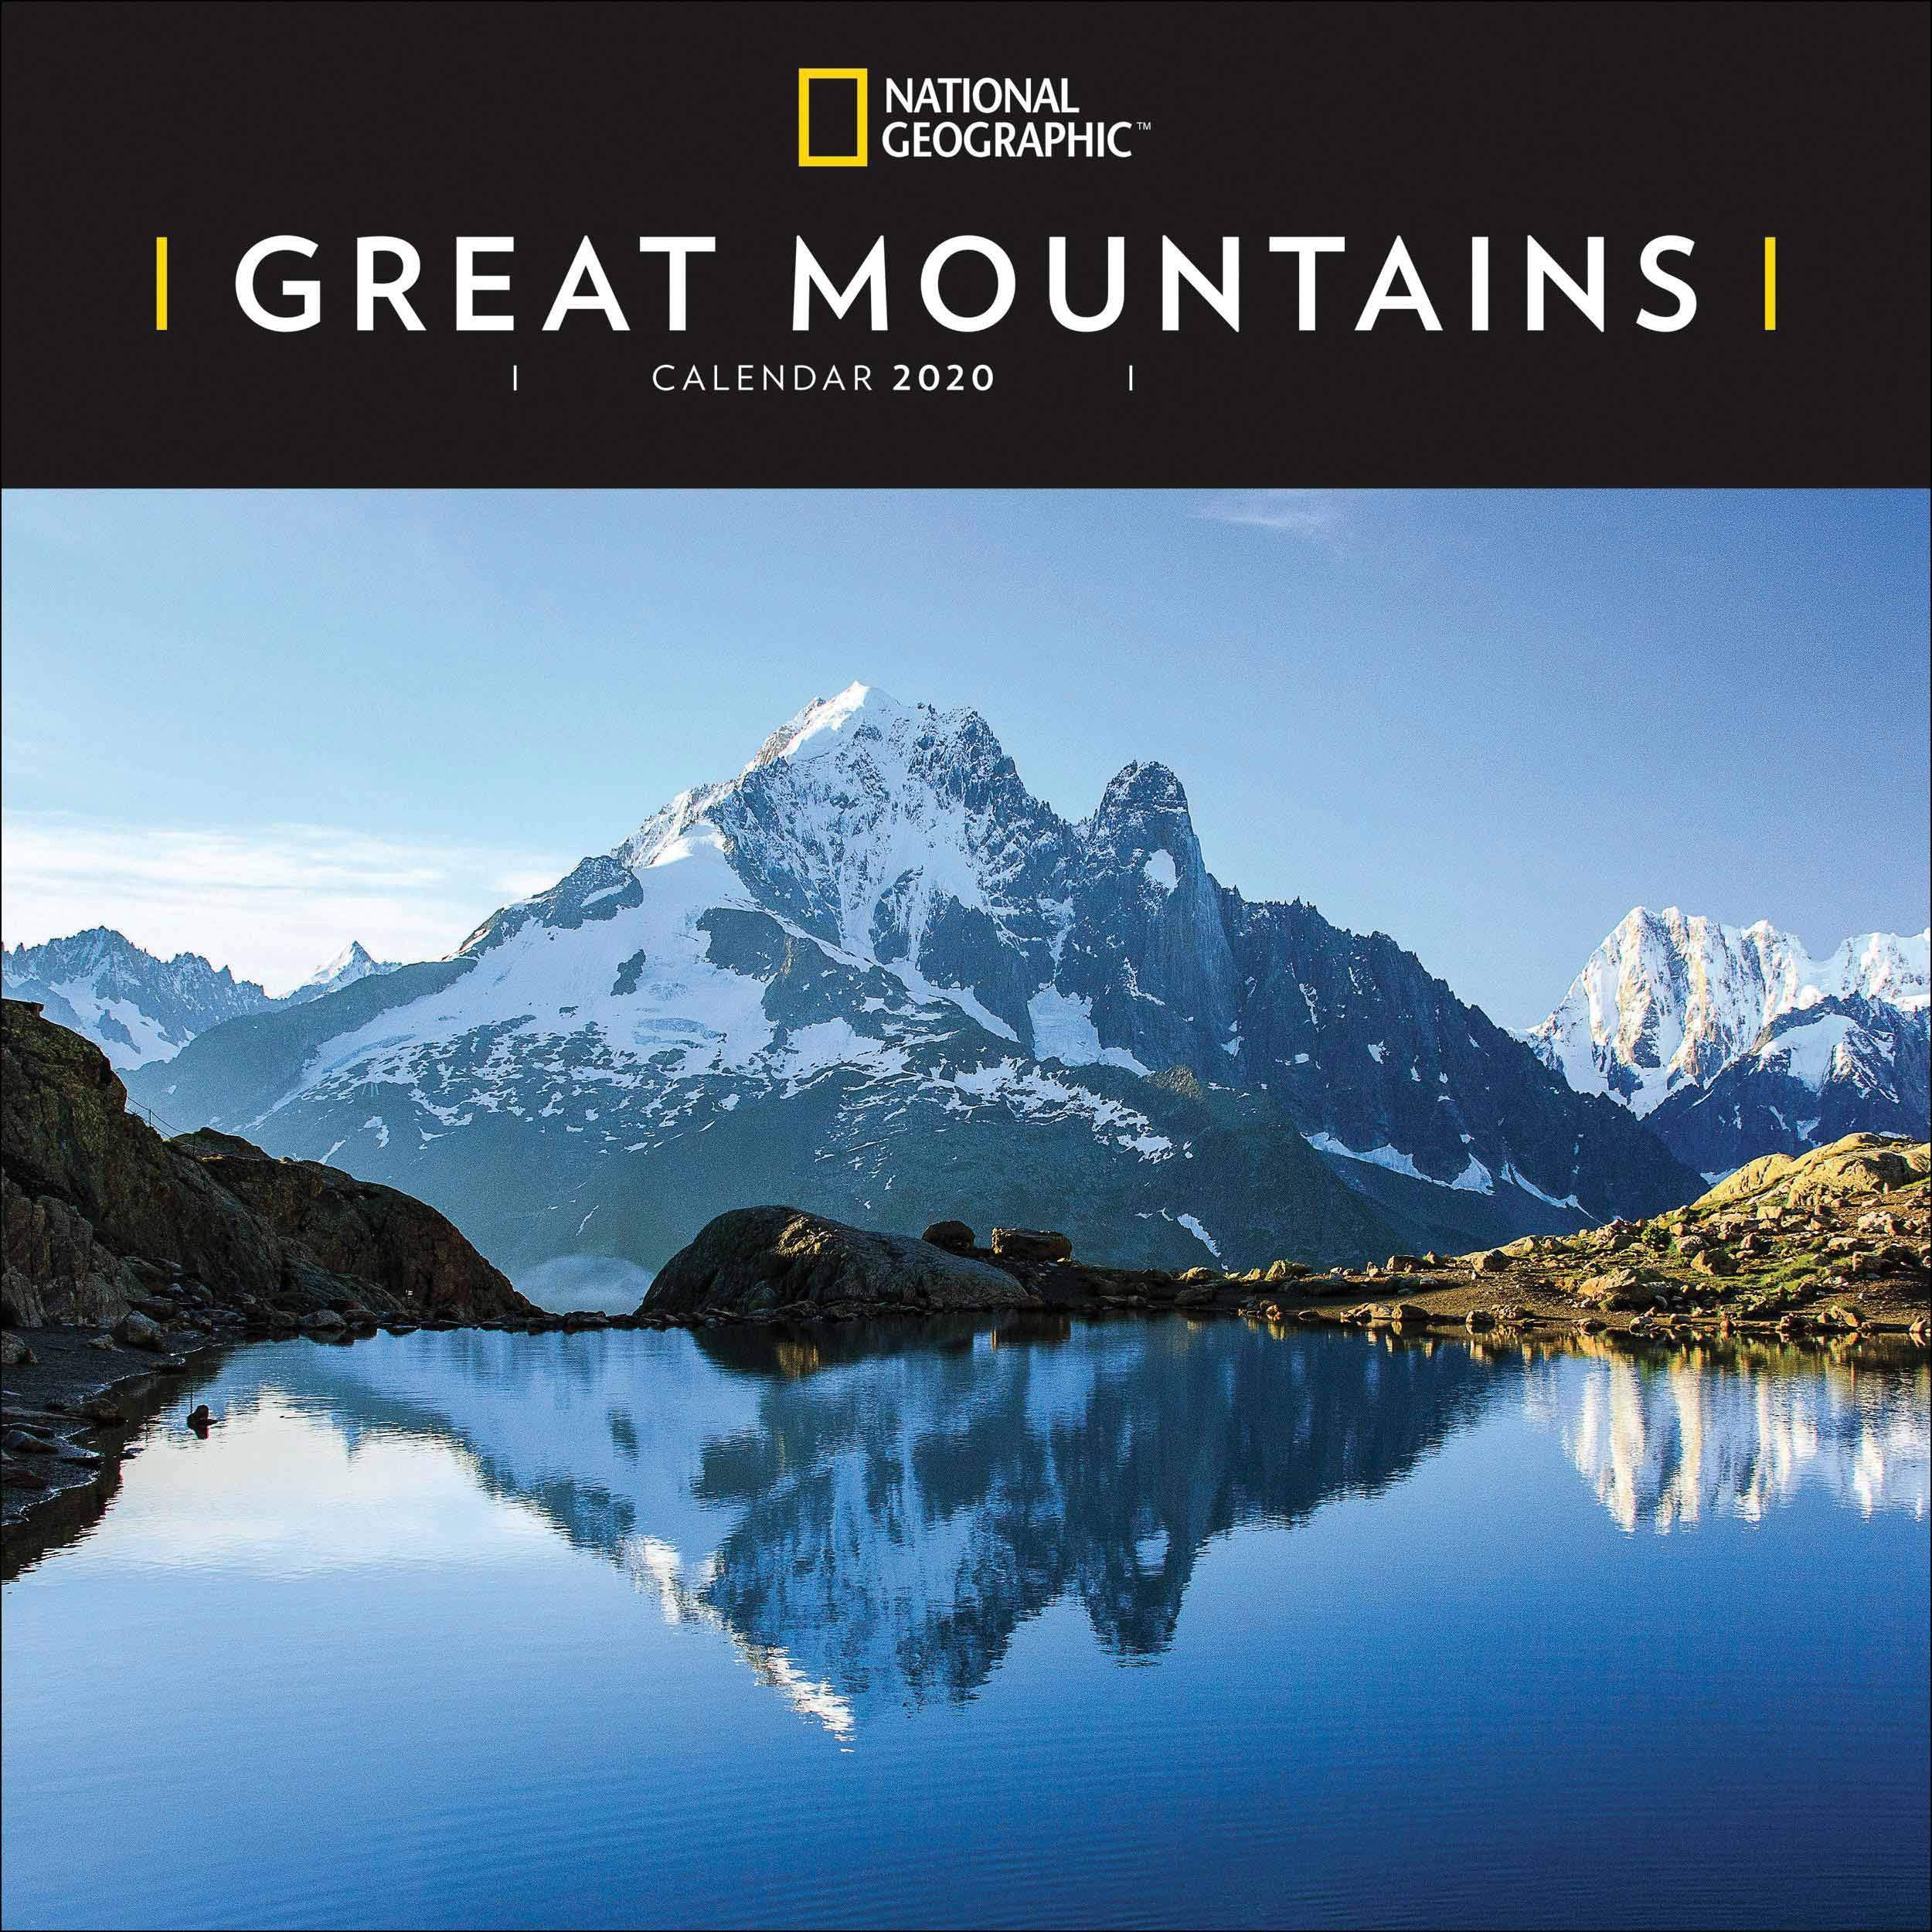 Great Mountains National Geographic Square Wall Calendar 202